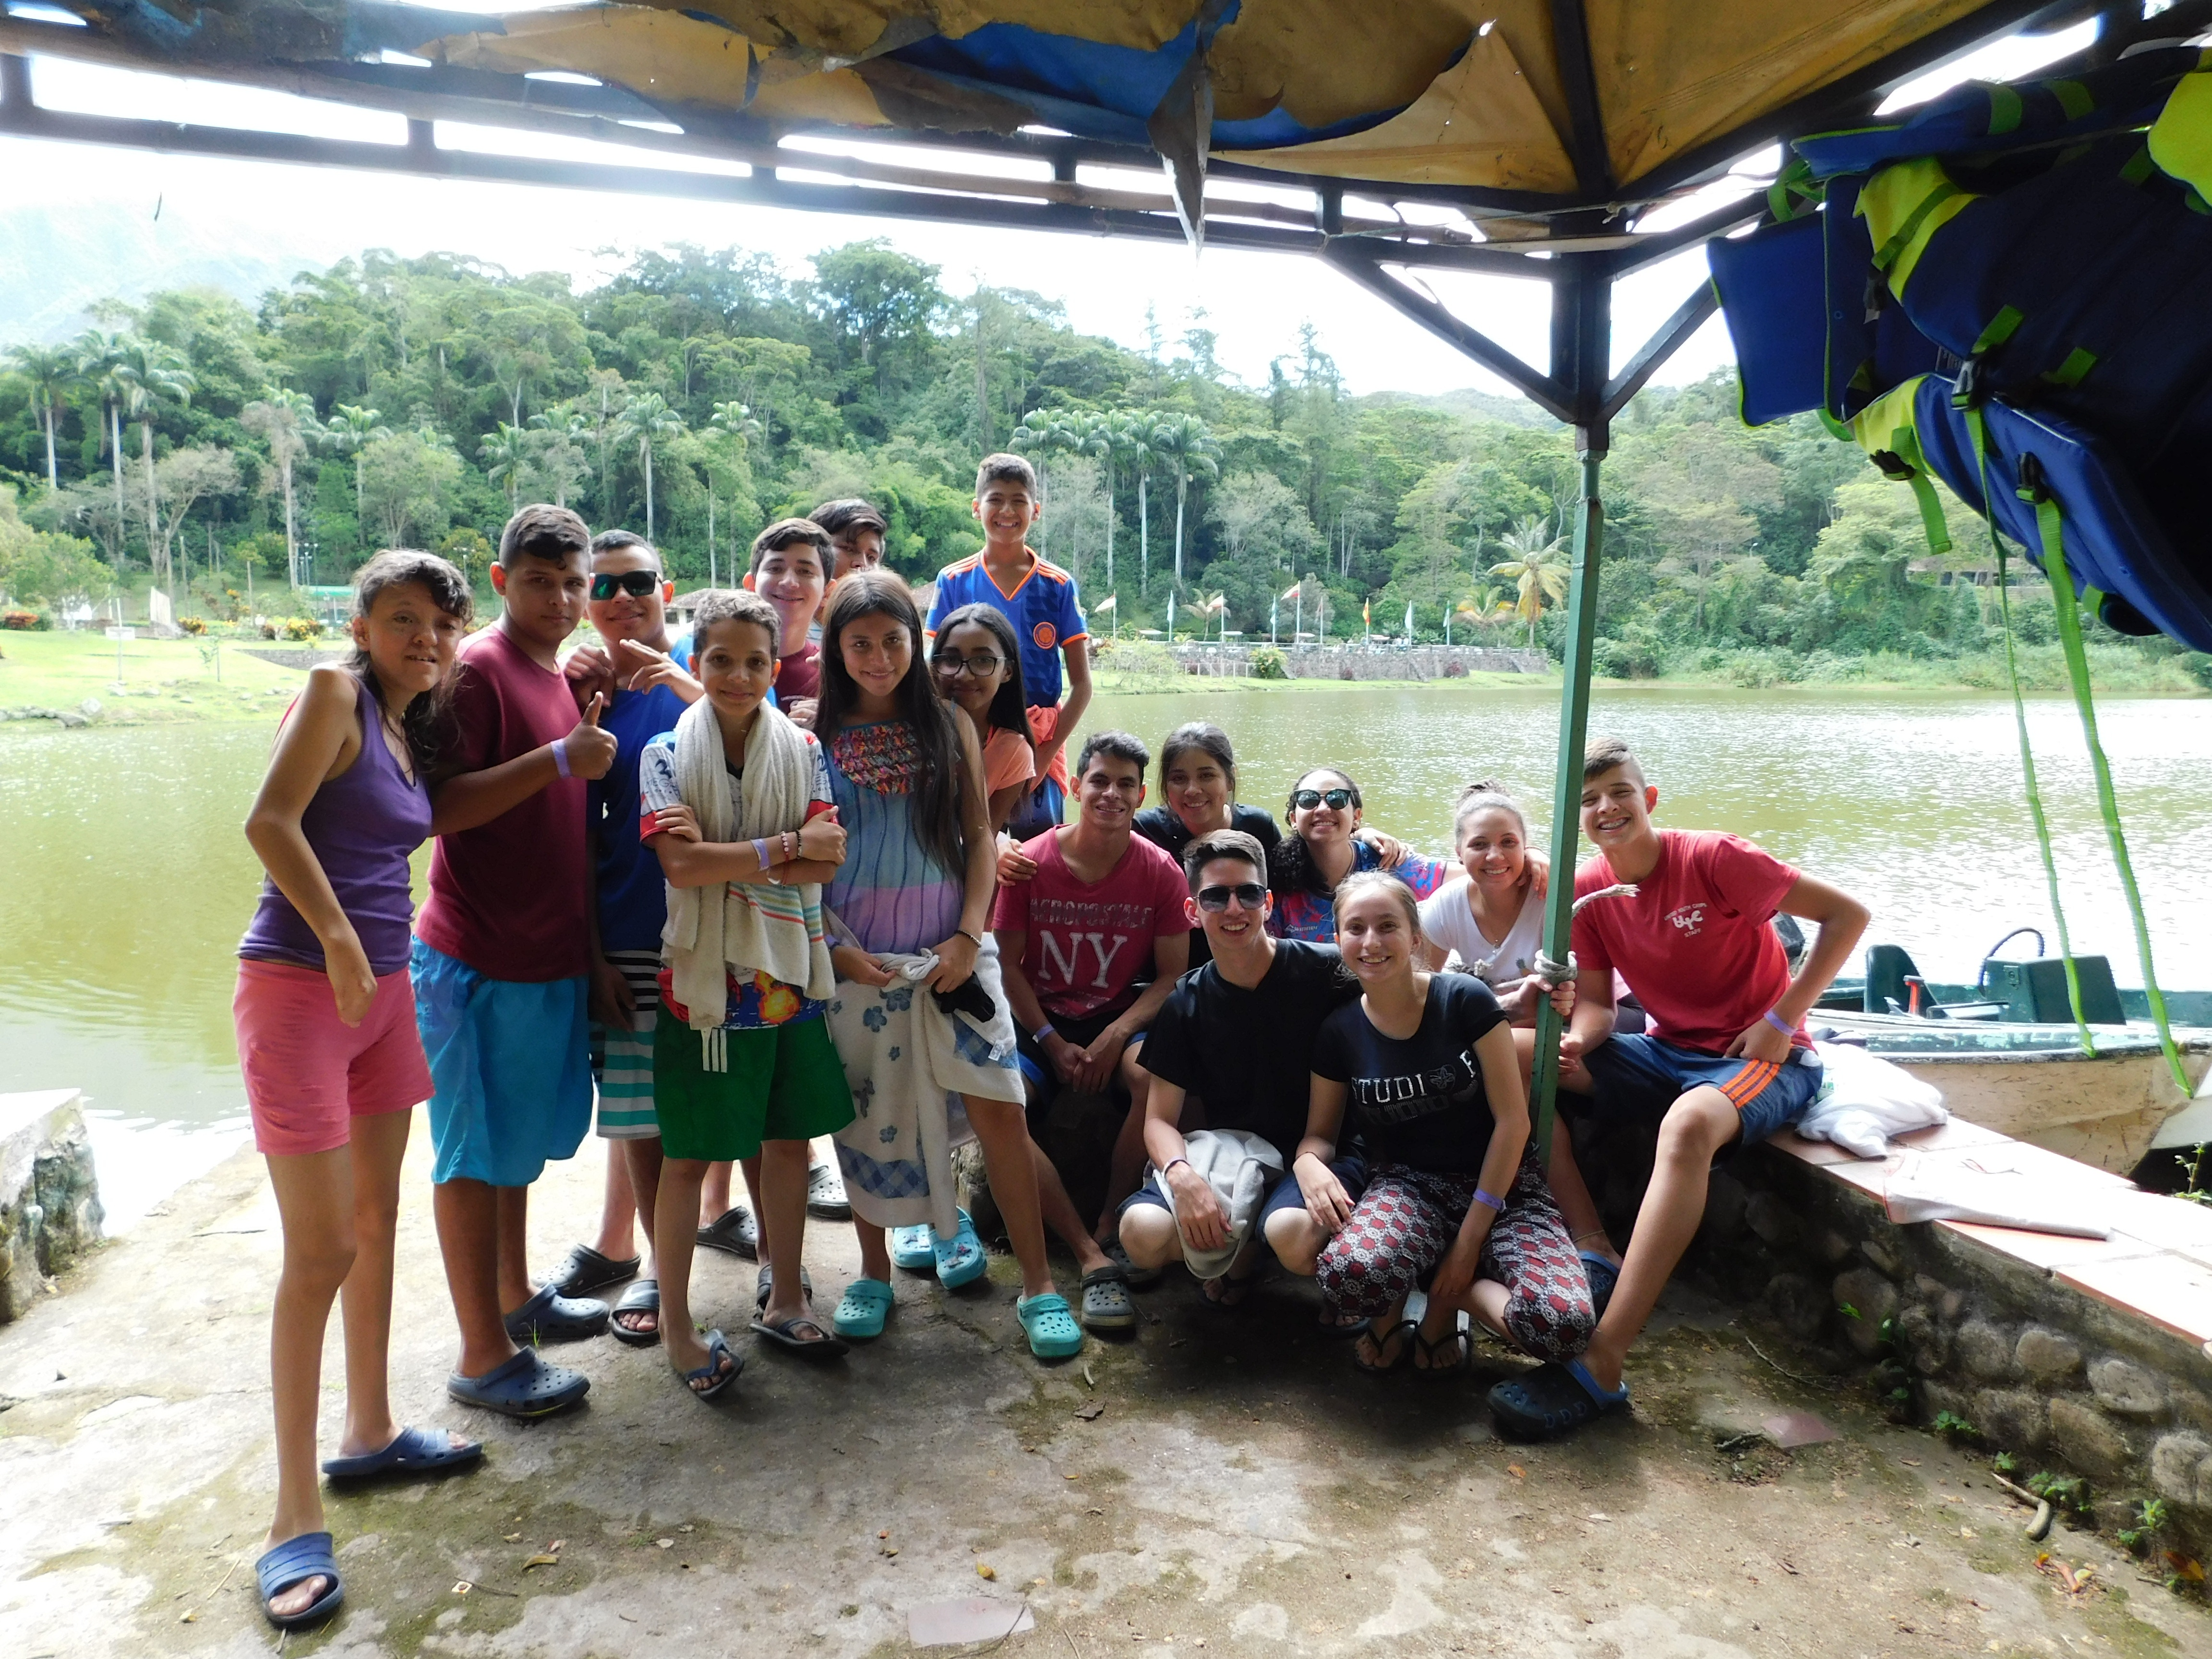 Campers and staff during boating activity at Columbia camp.